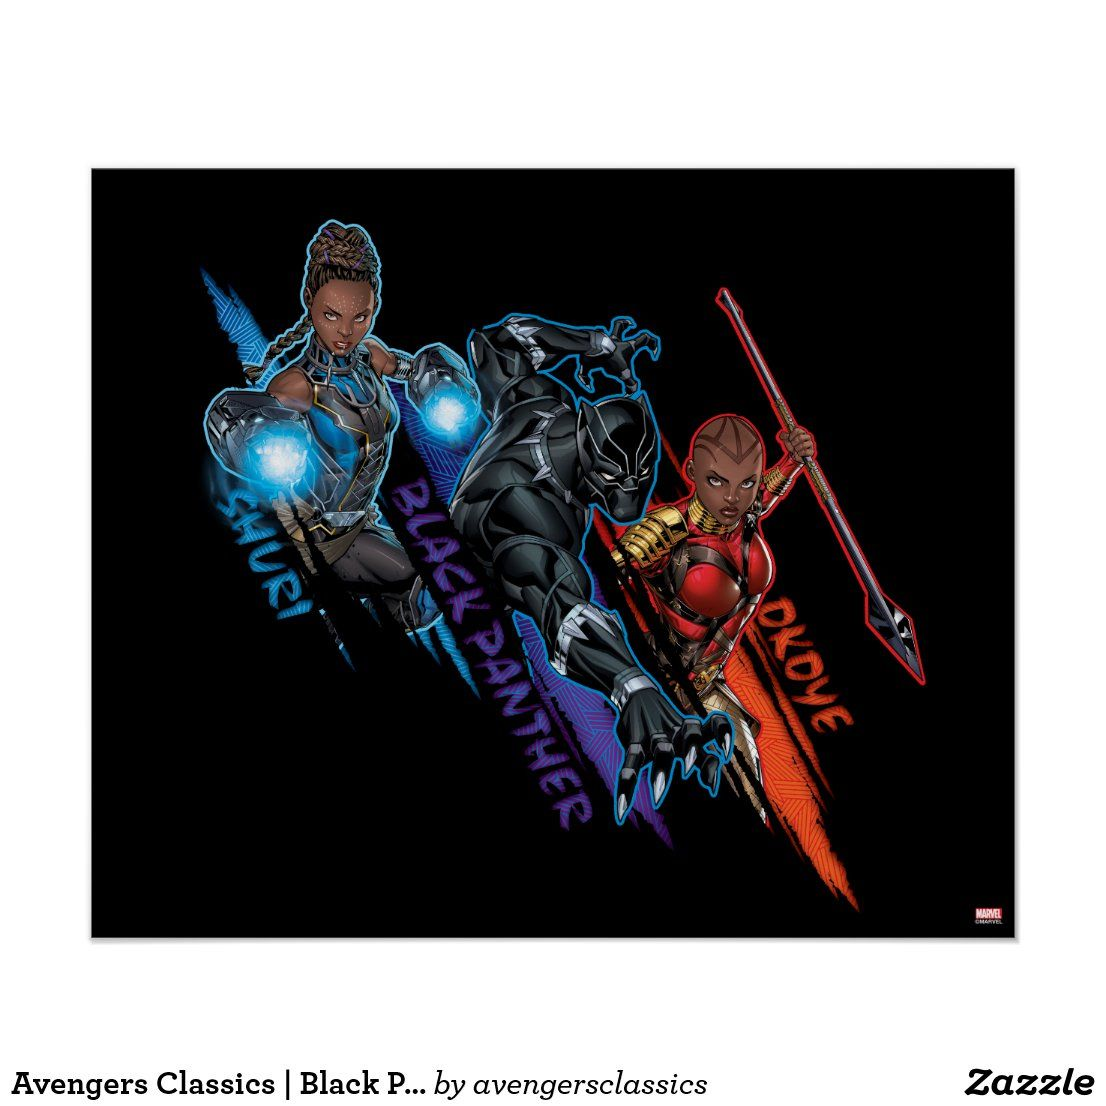 Avengers classics black panther team up poster zazzle